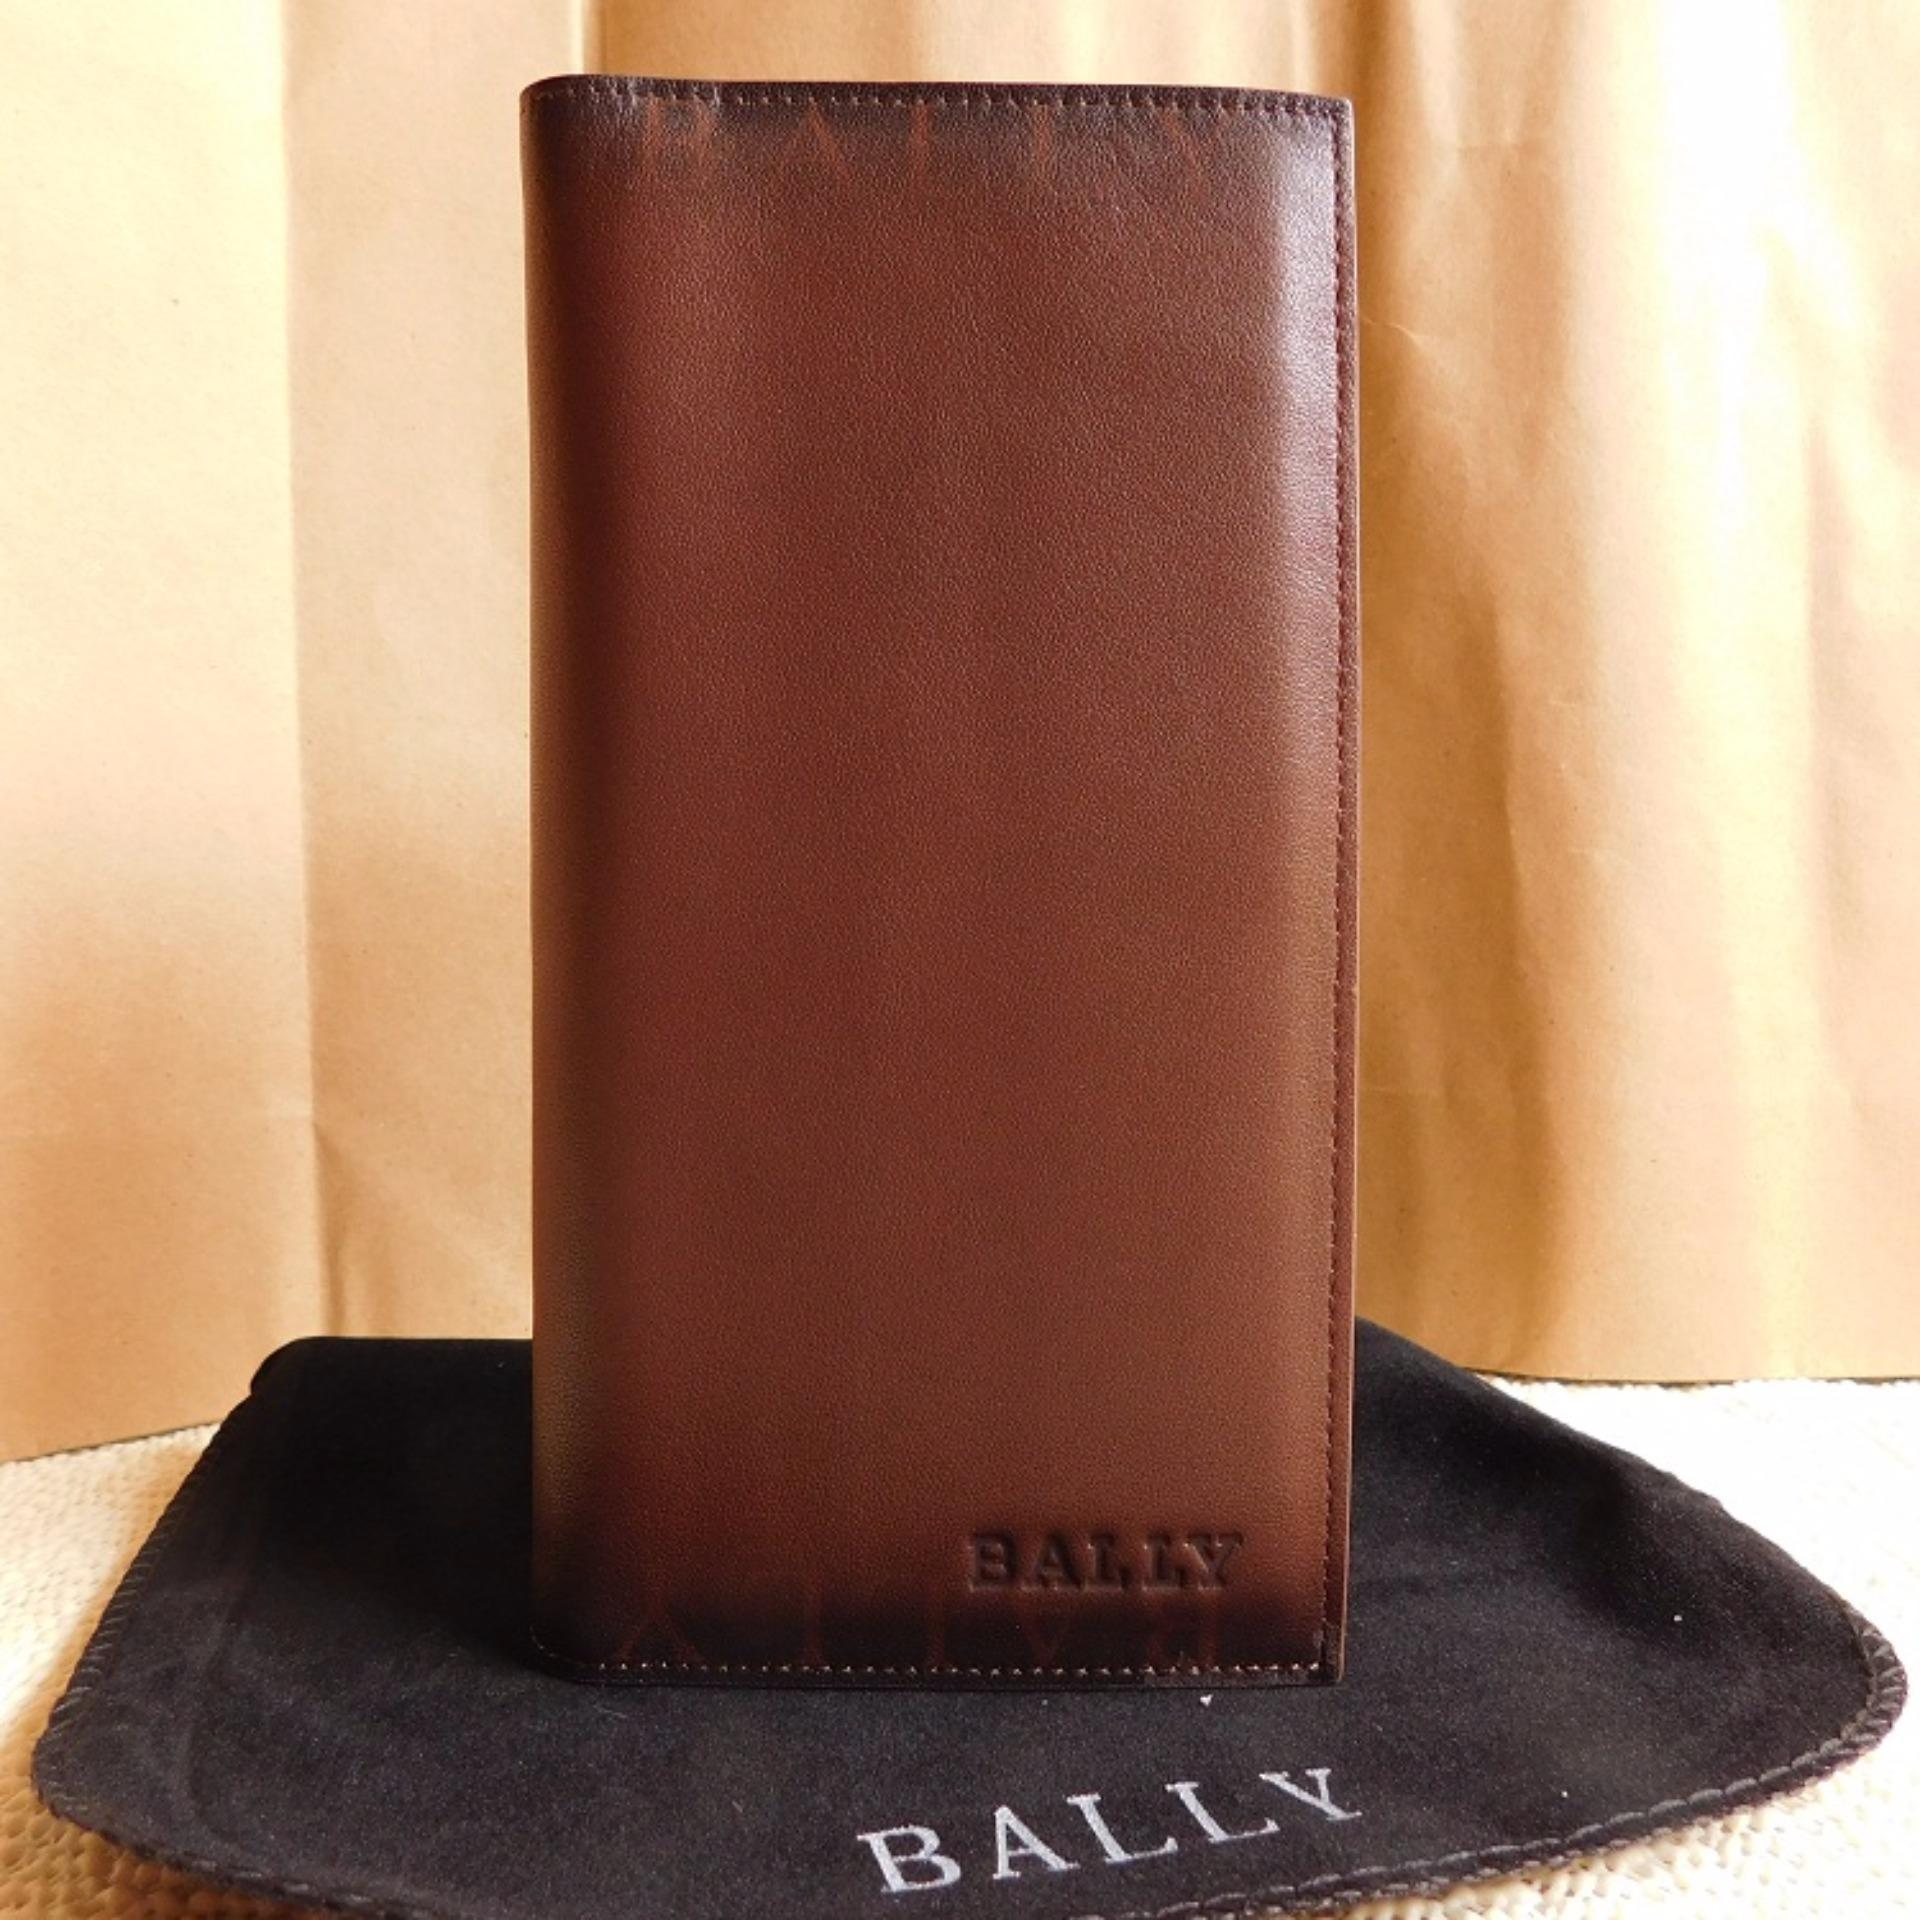 Dompet Pria & Wanita Bally  Leather Wallet Soft  Leather Purse Phone Bag  Good Quality